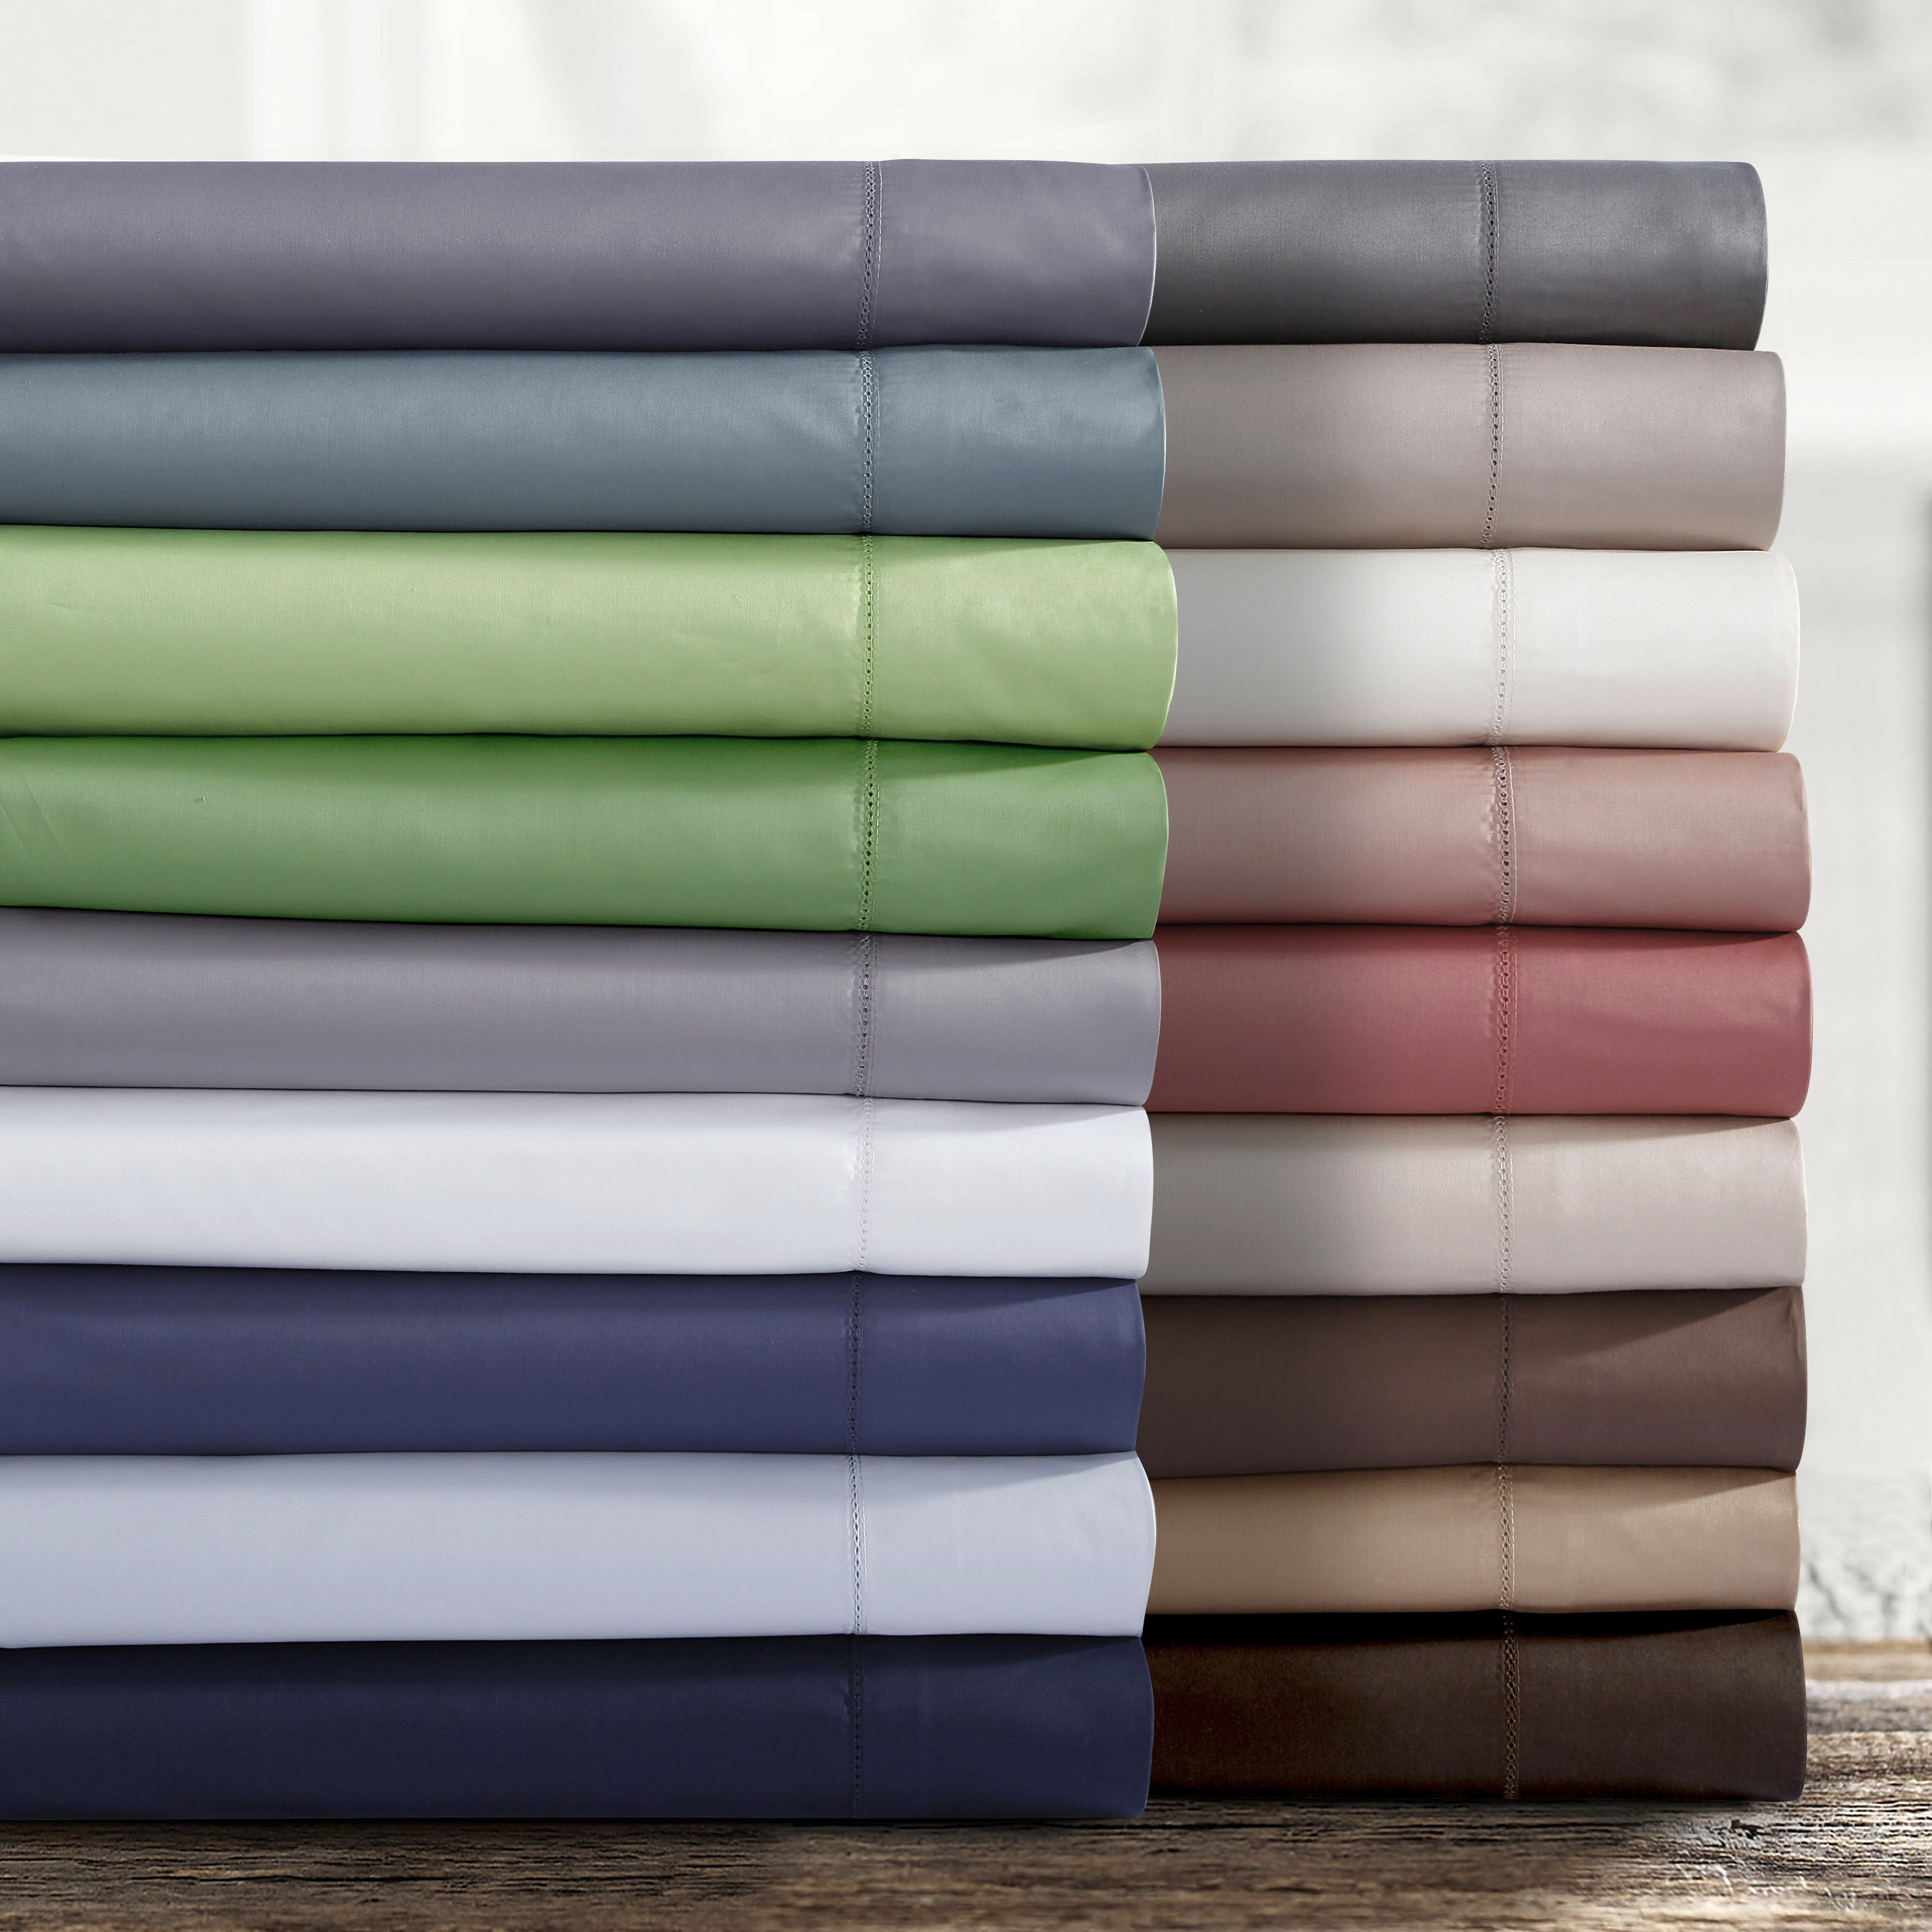 Extra deep pocket queen fitted sheets - Tribeca Living 750 Thread Count Egyptian Quality Cotton Extra Deep Pocket Sheet Set